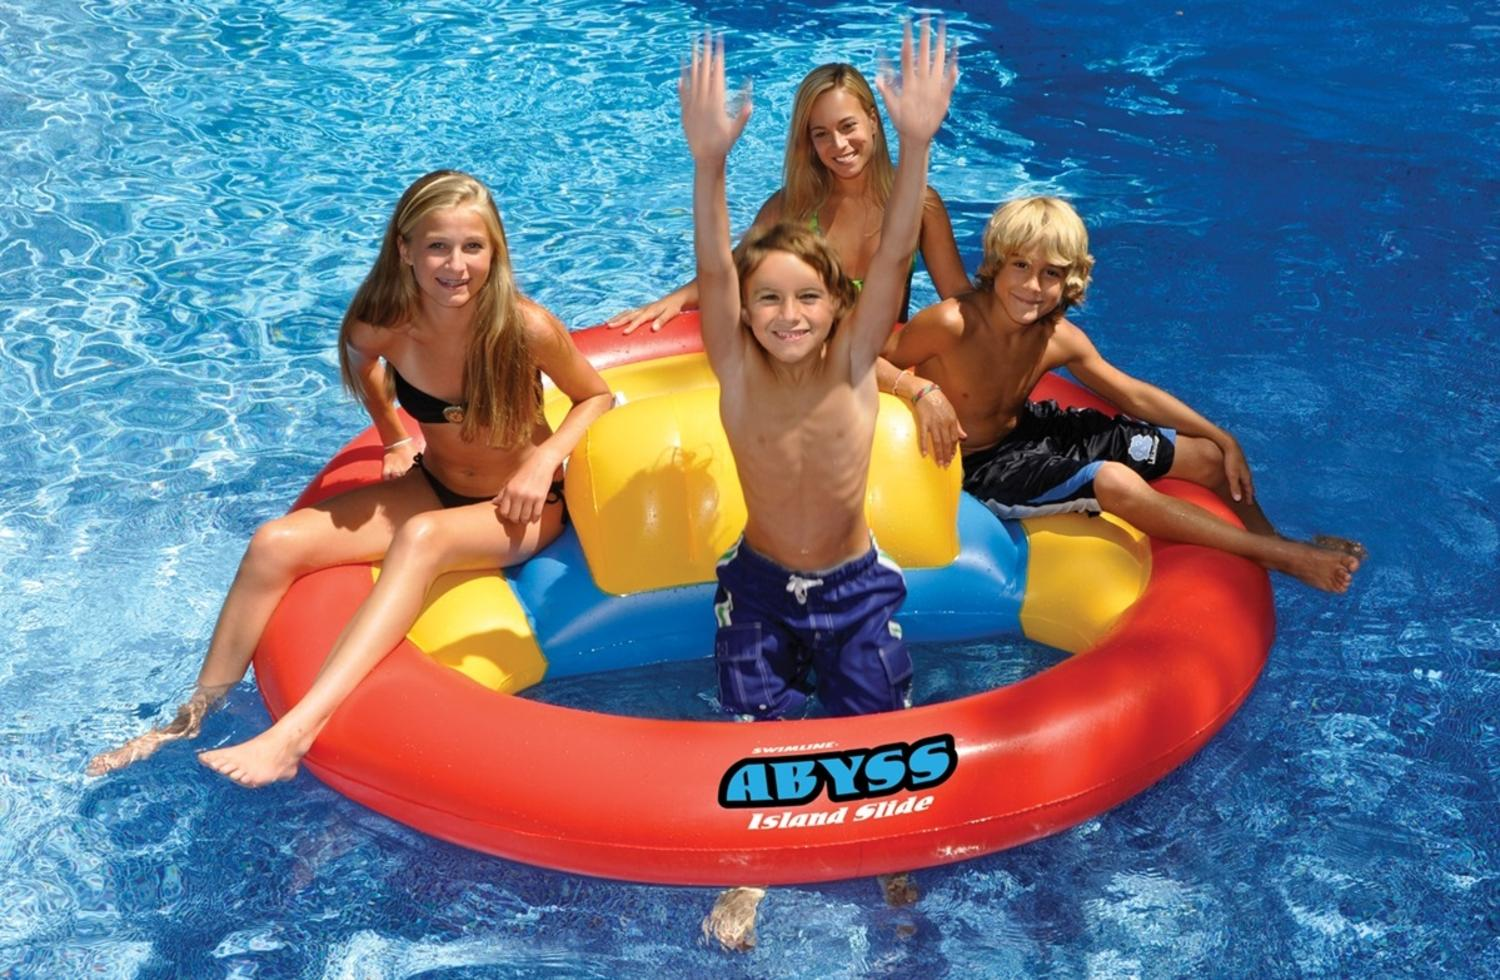 72� Water Sports Inflatable Floating Abyss Island Slide Swimming Pool Toy by Swim Central